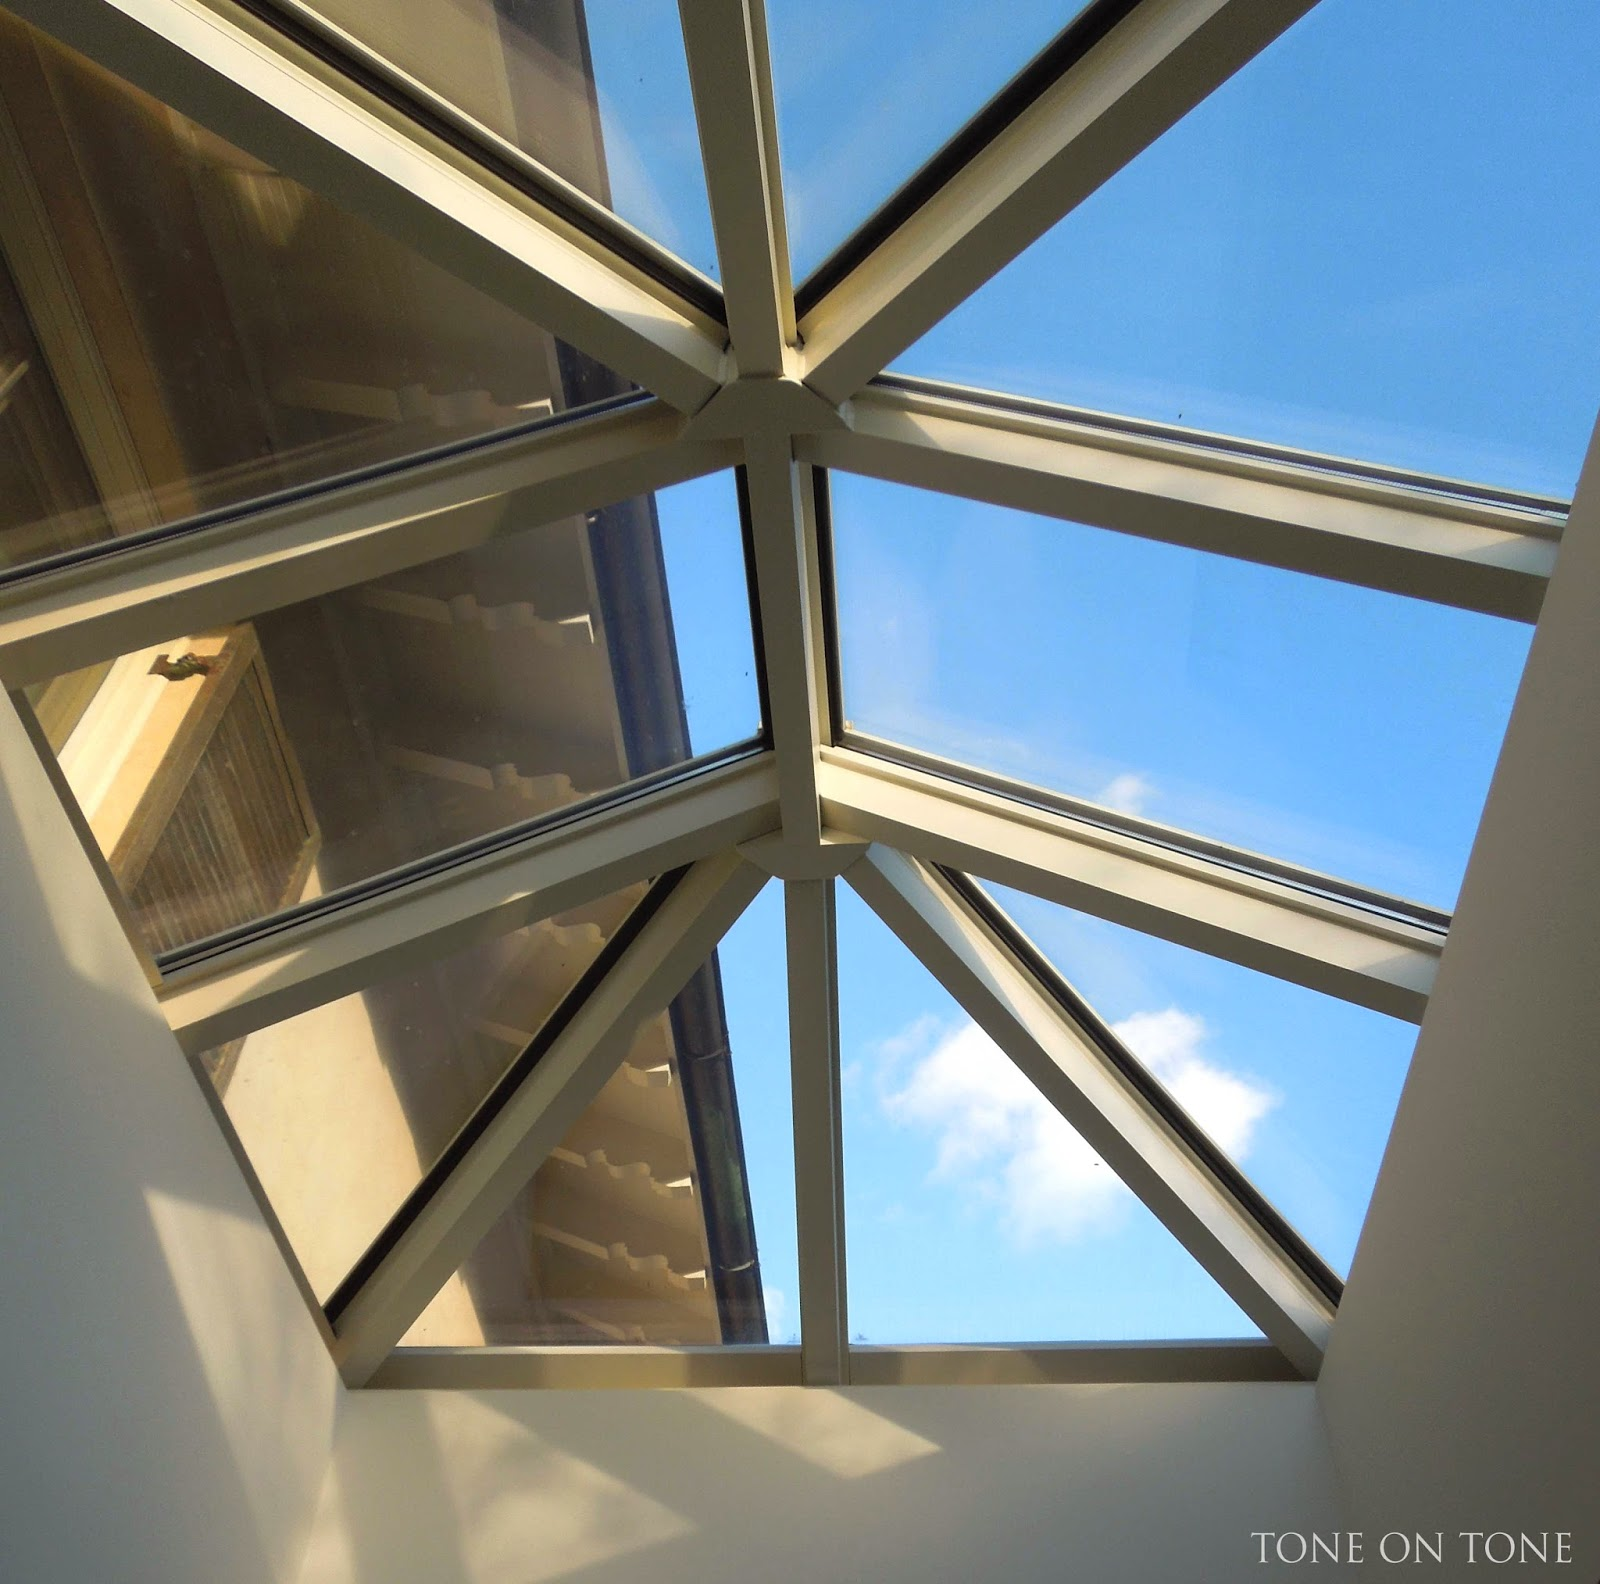 Tone on tone small spaces in our home for Skylight home